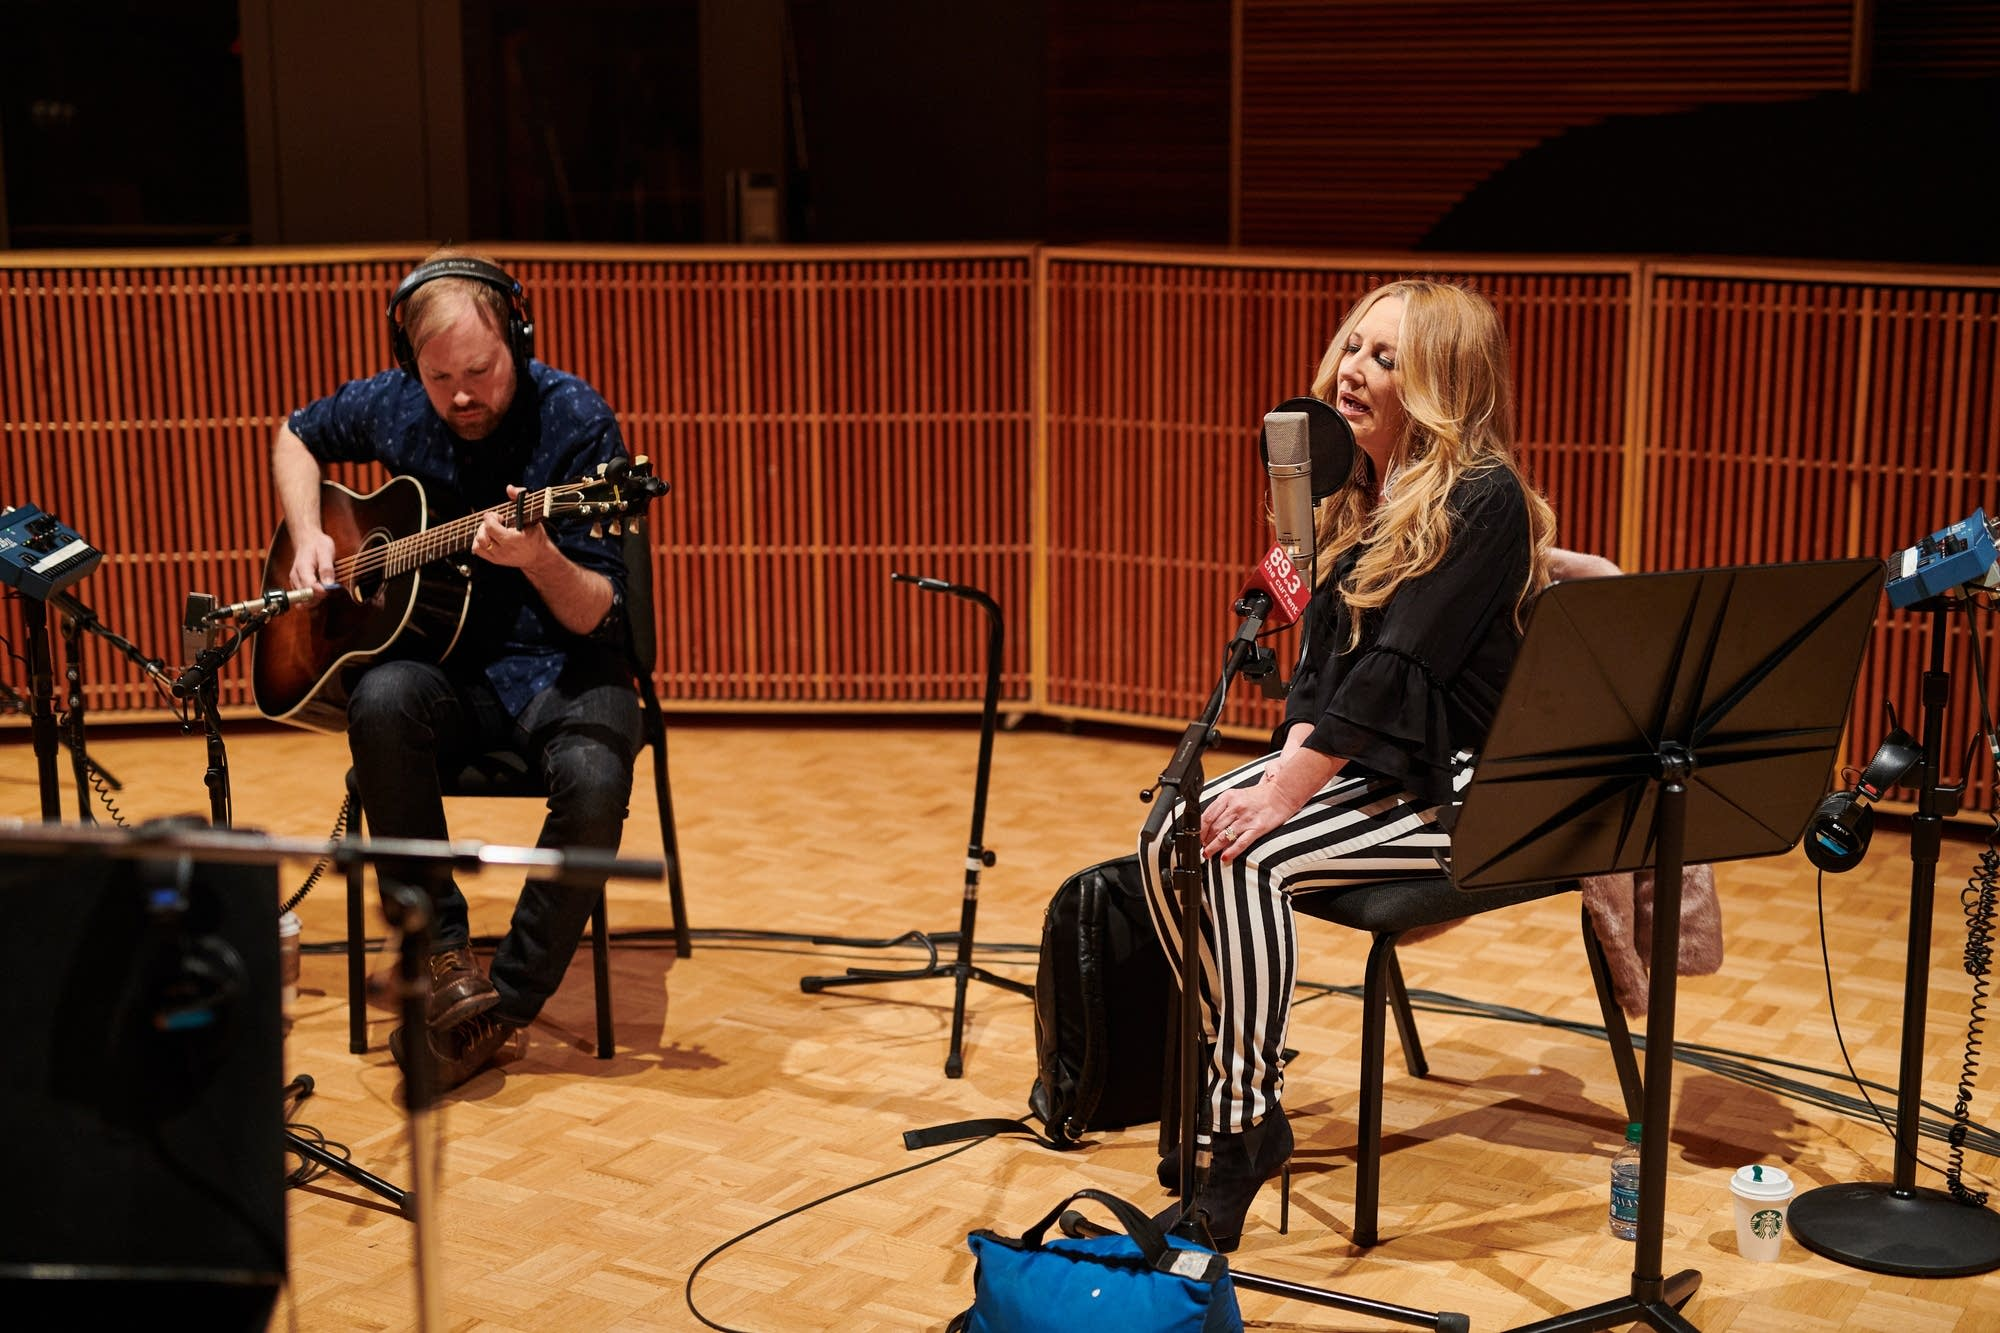 Lee Ann Womack performs in The Current studio